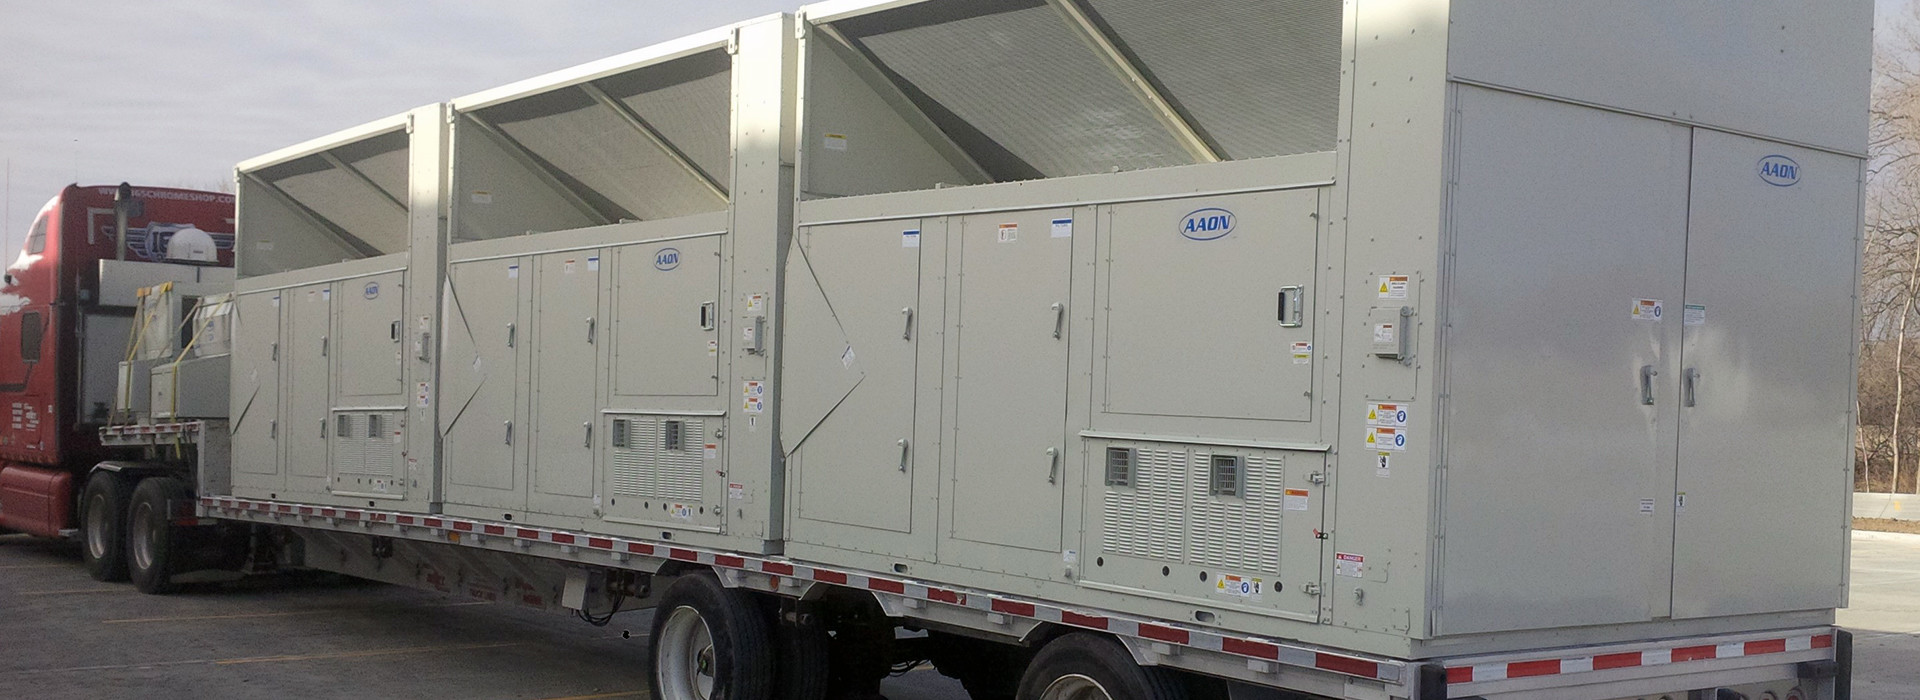 Syncquip HVAC Products - air handlers, controls, and more HVAC systems